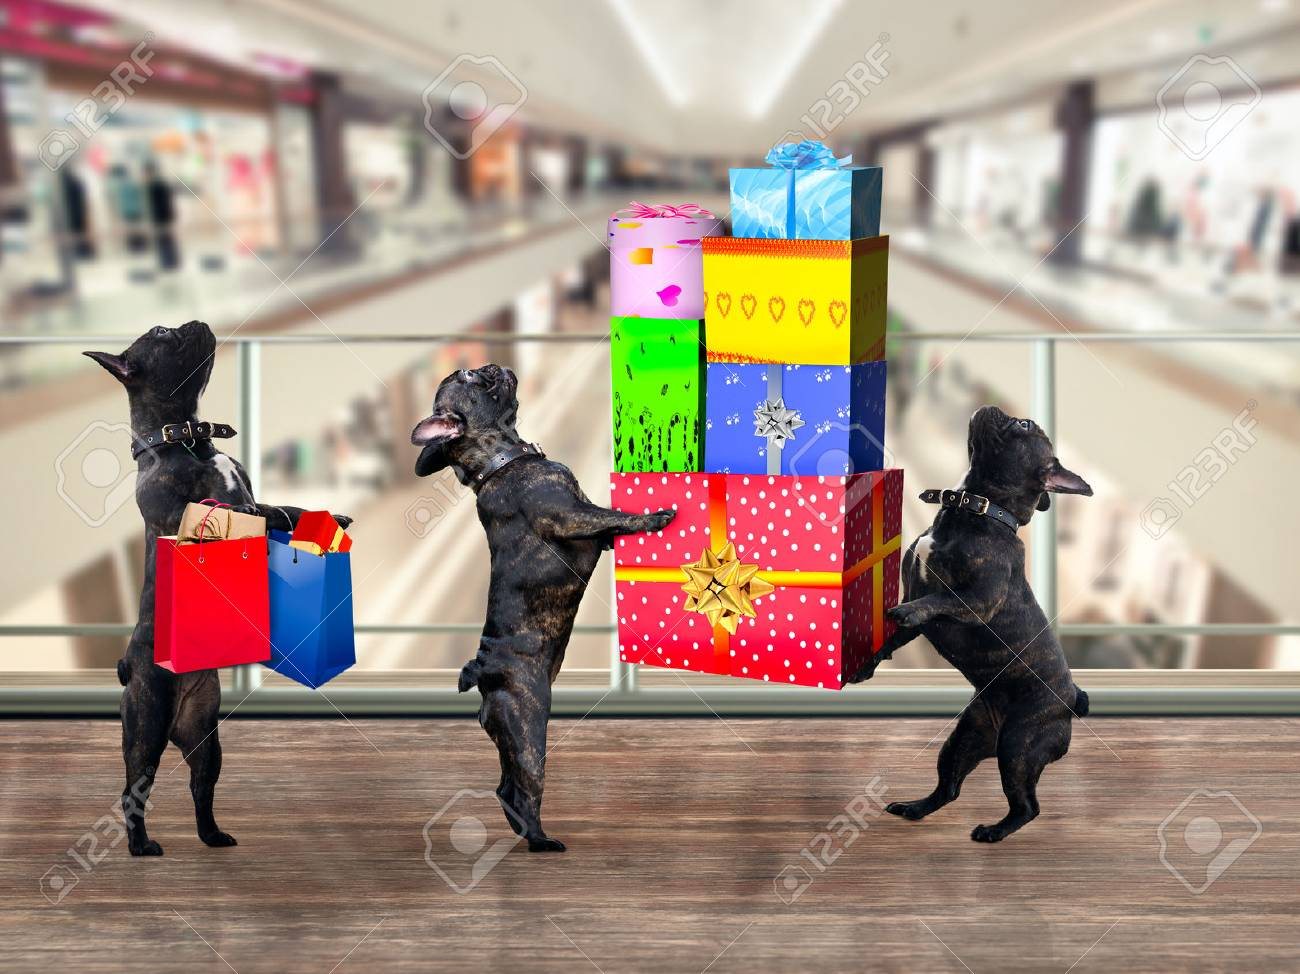 Dogs in the Mall. Are a lot of gifts and purchases - 69081434